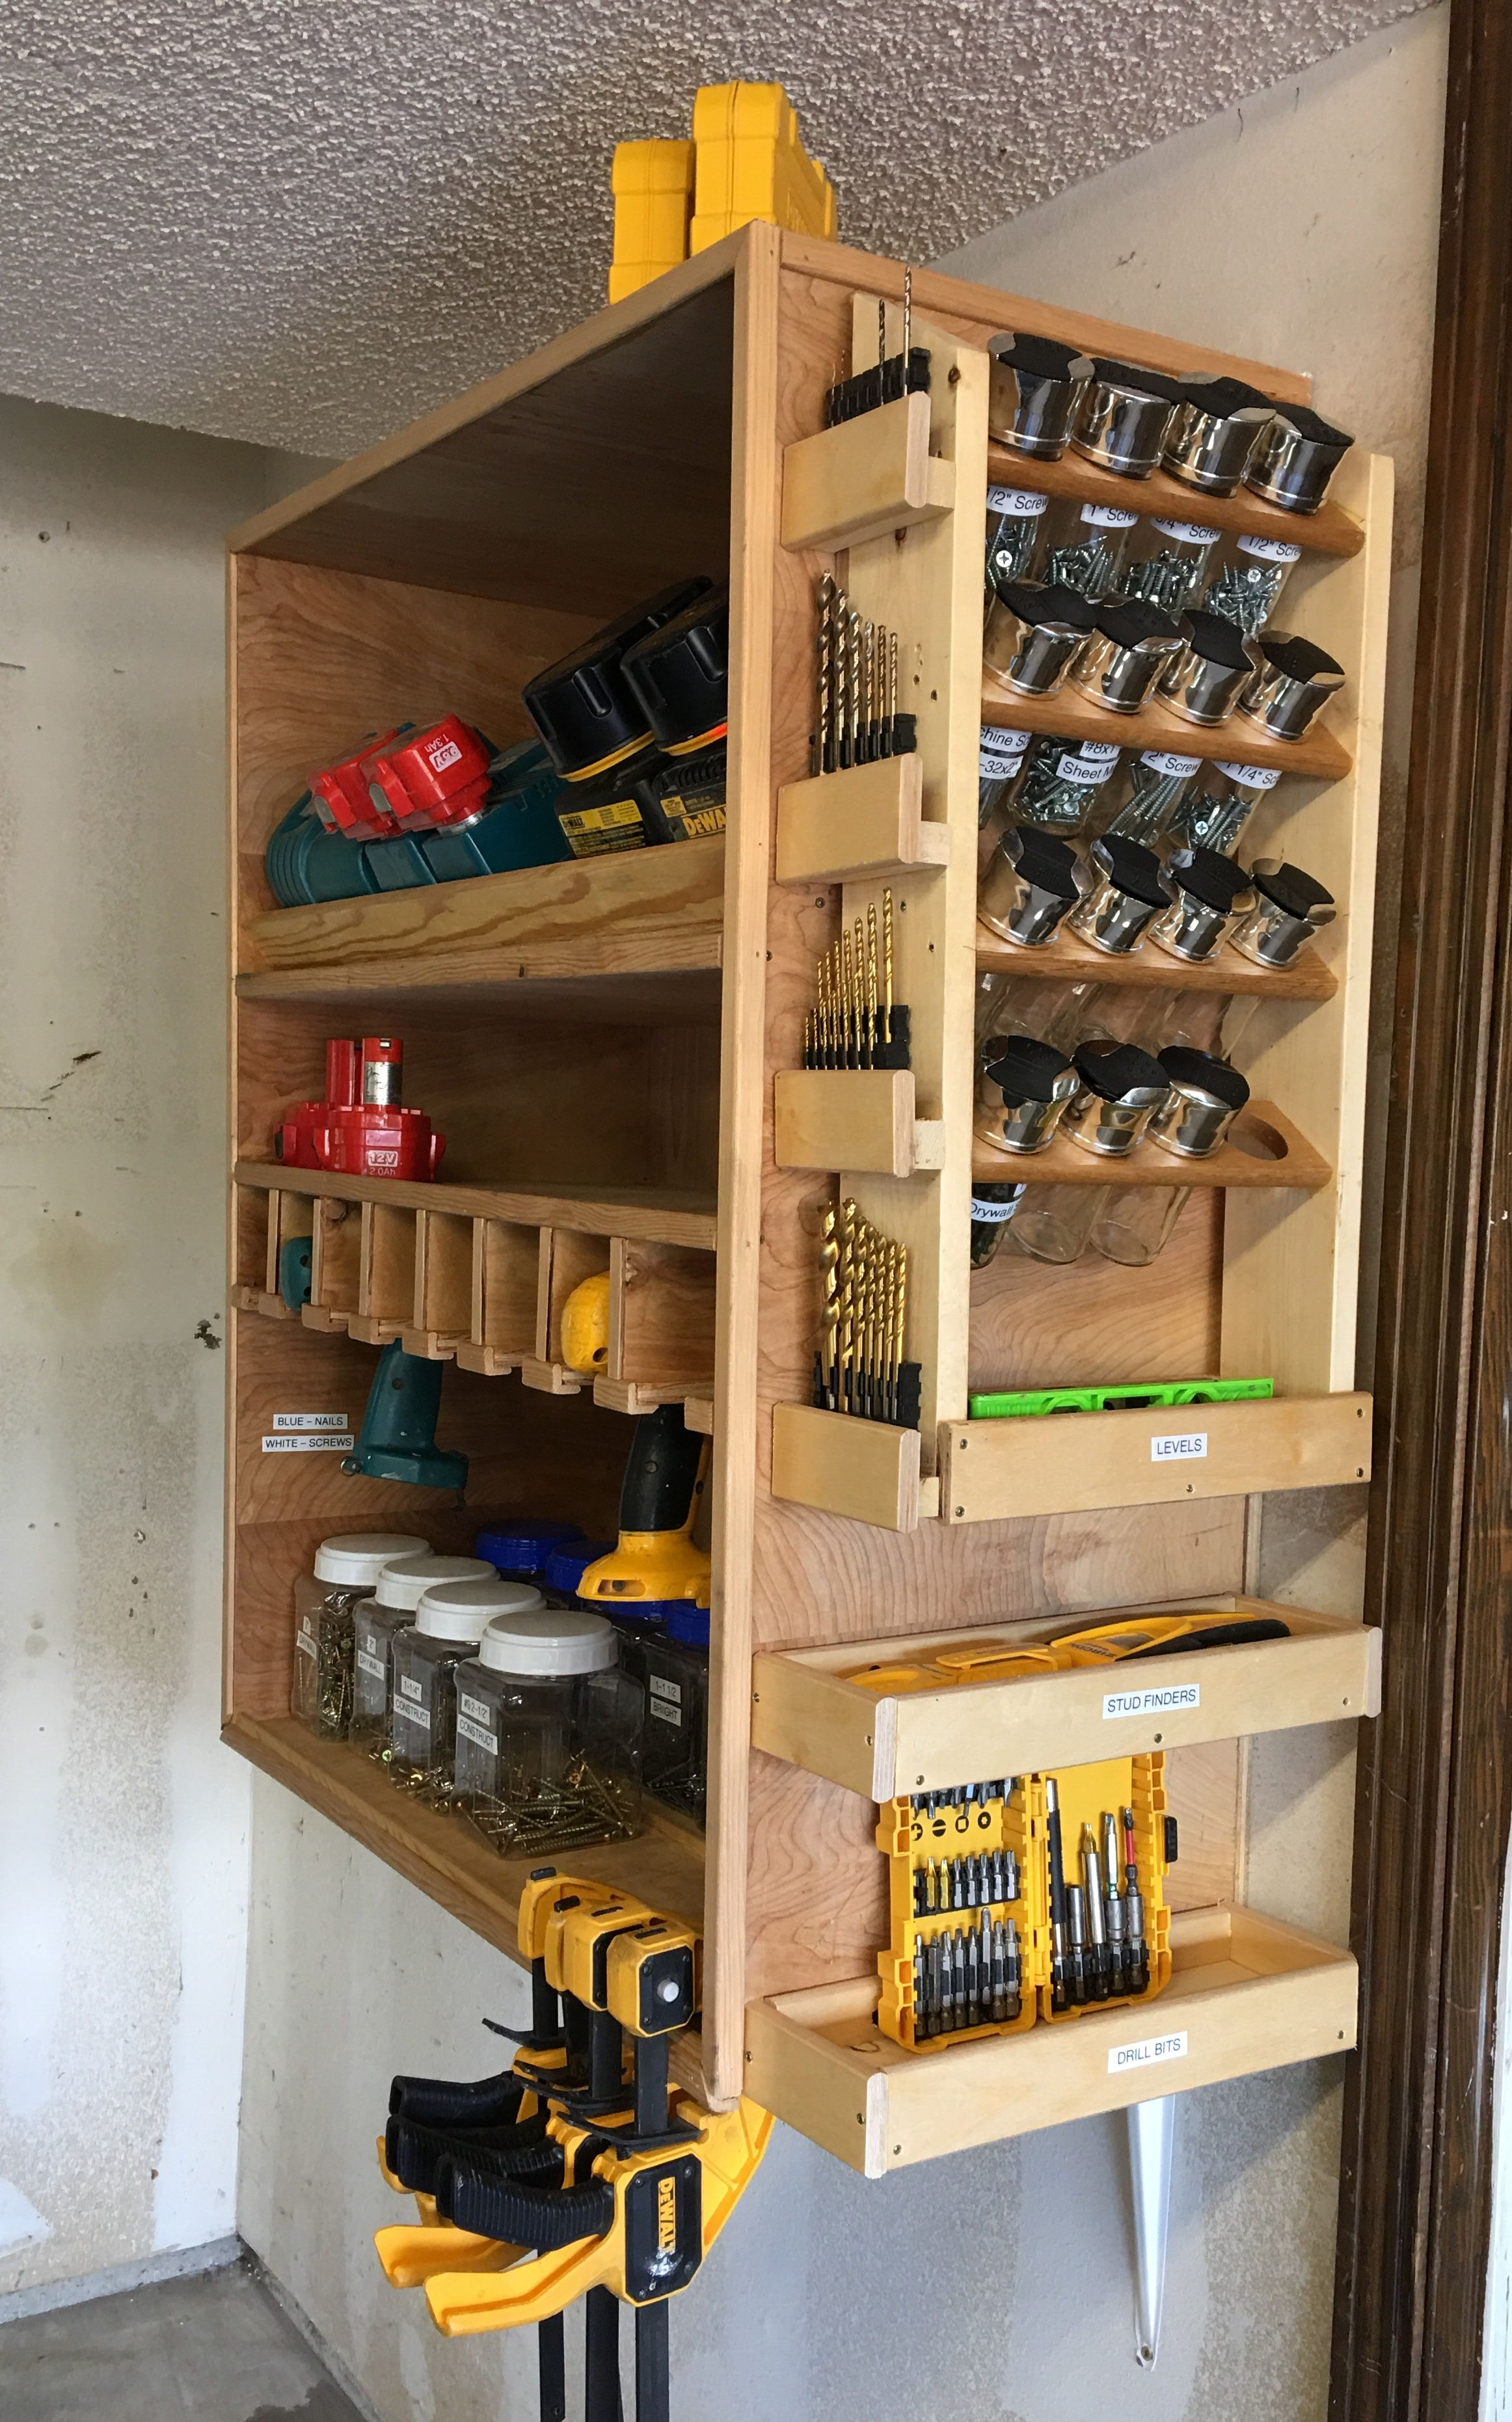 Photo of Spice rack for screws on charger station